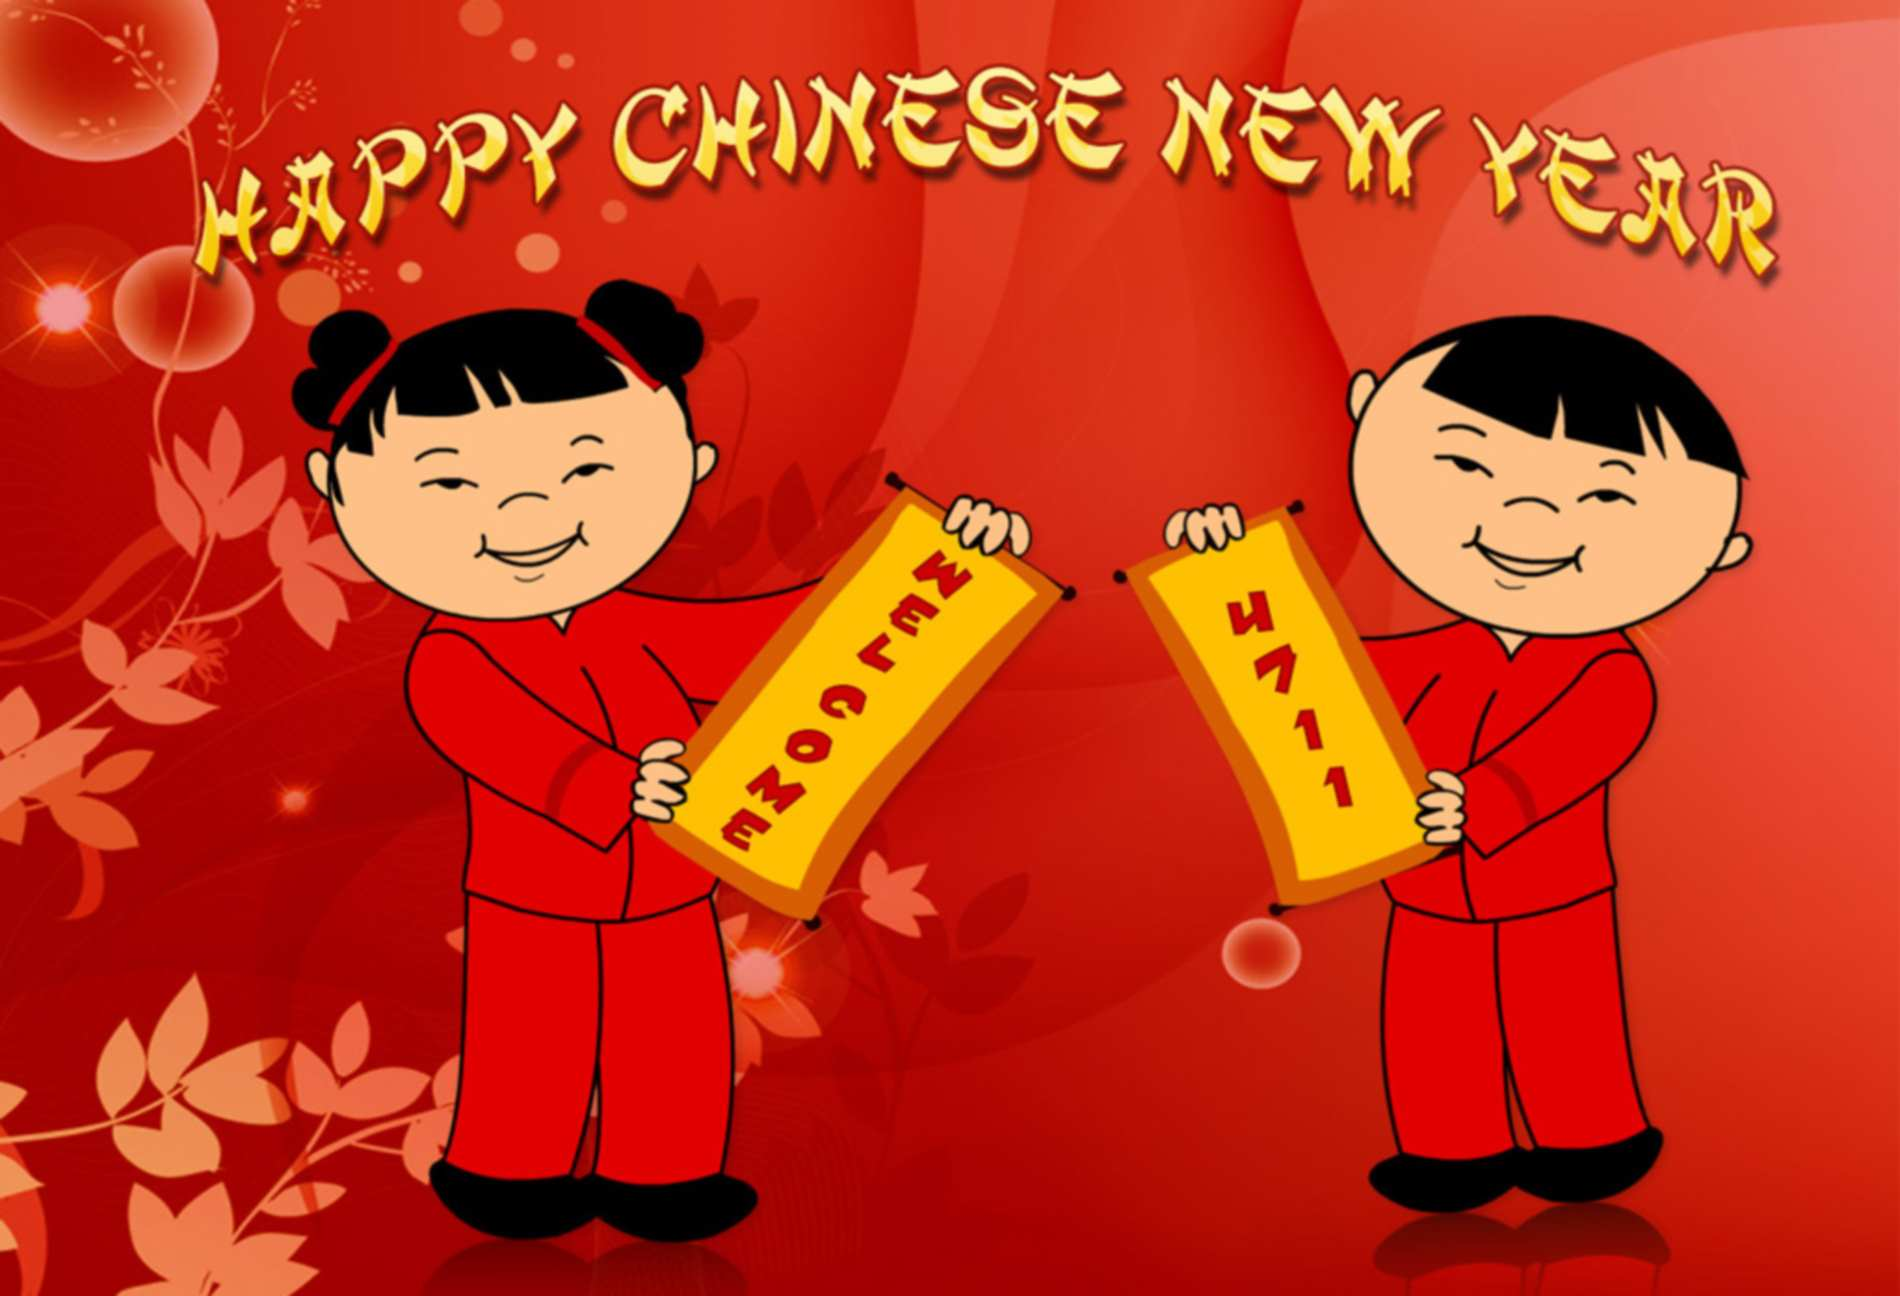 Happy chinese new year greetings free hd images happy chinese new year greetings kristyandbryce Choice Image